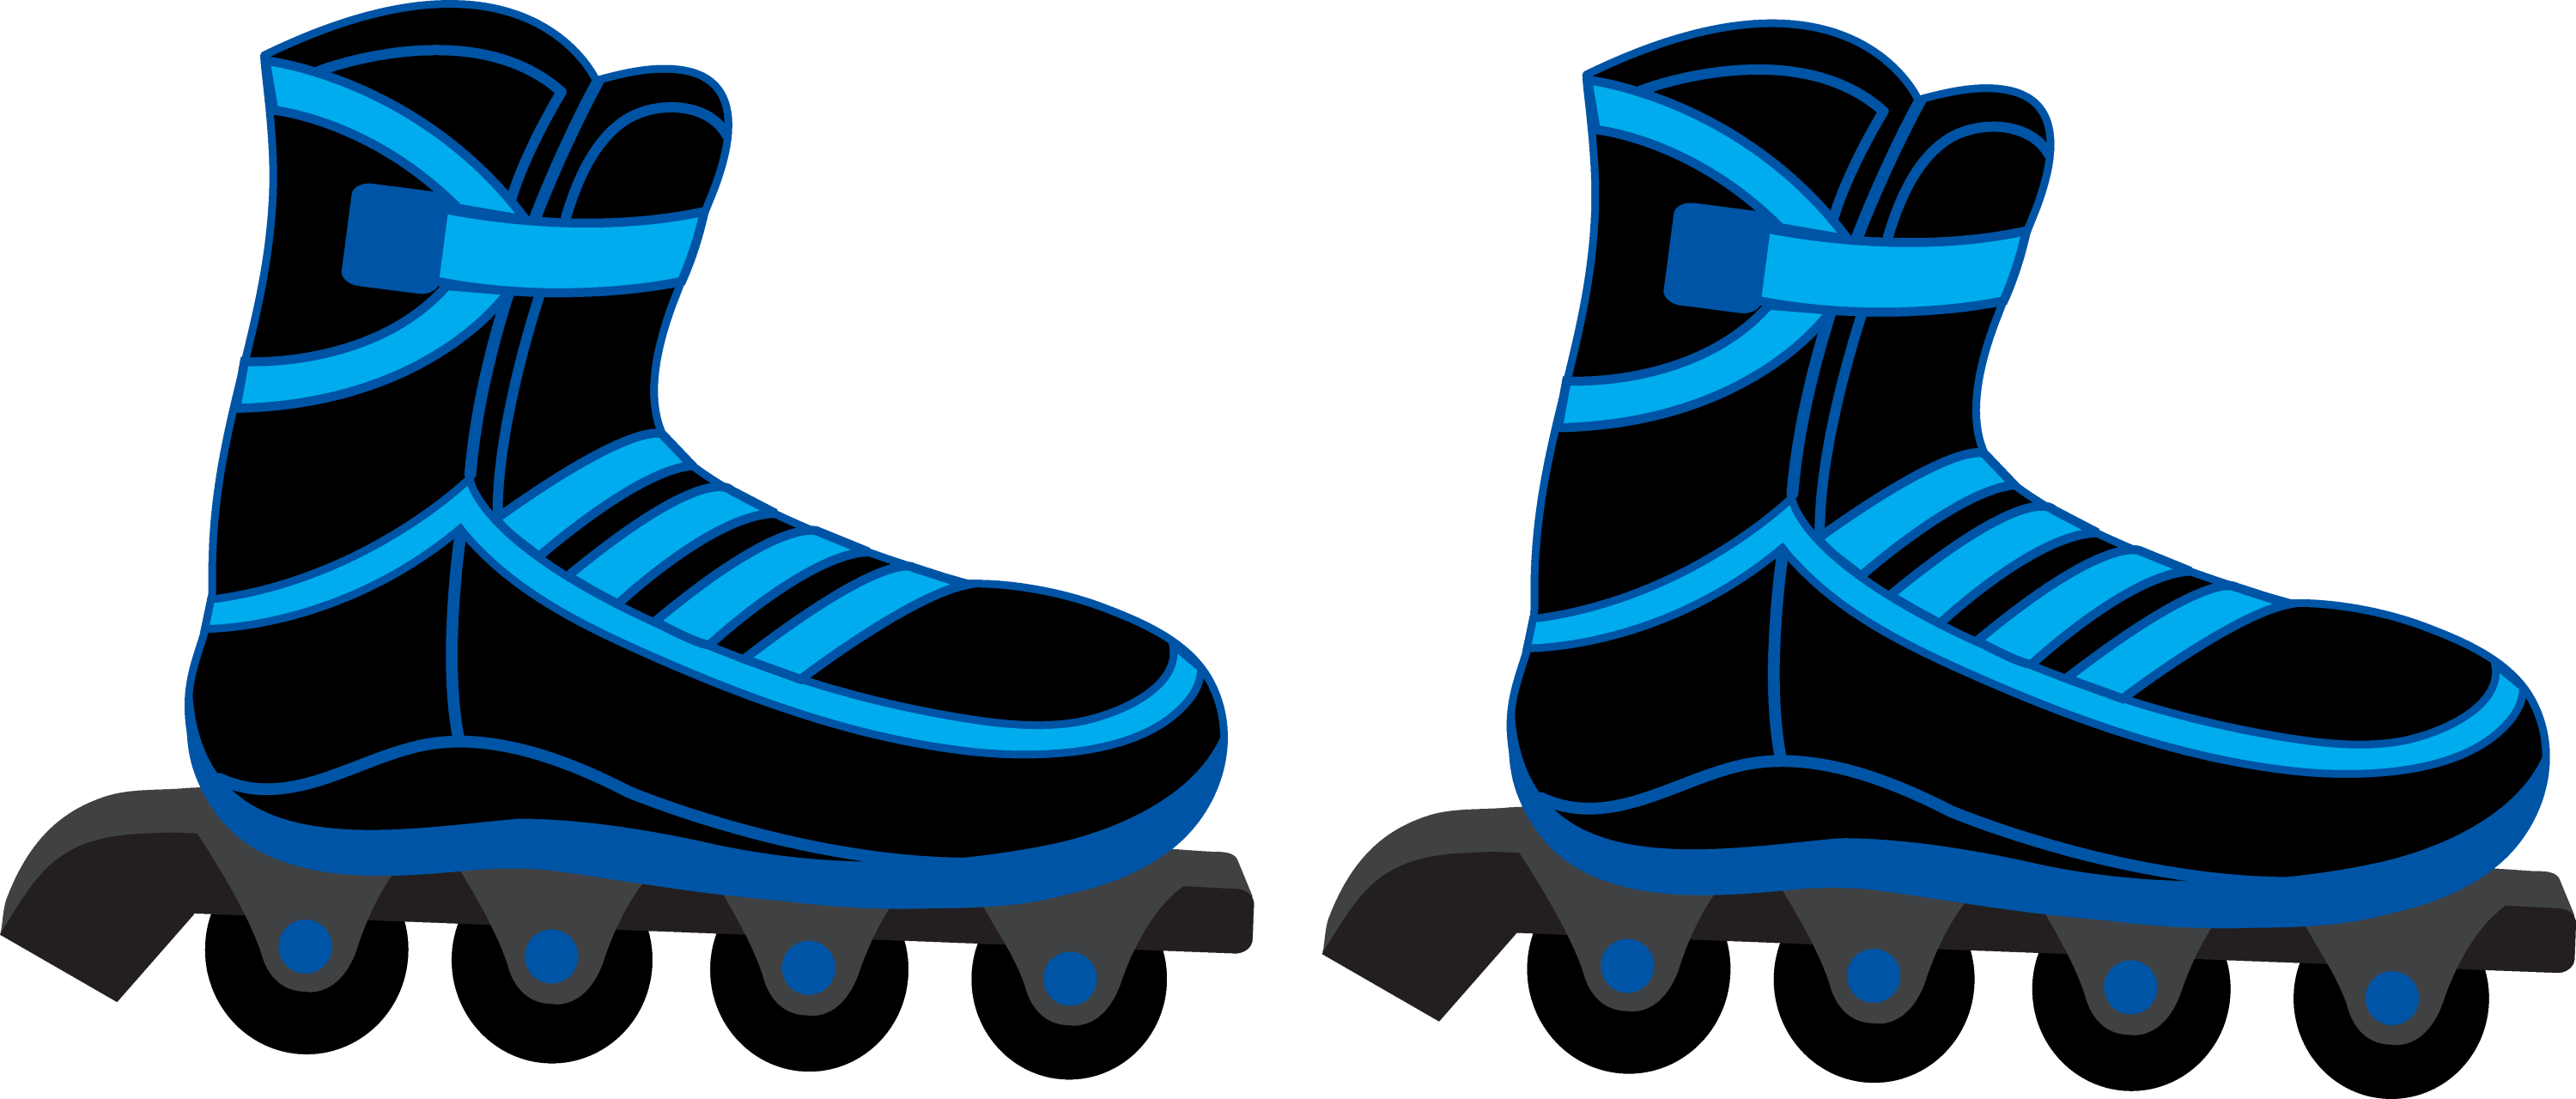 cool blue and black rollerblades free clip art rh sweetclipart com roller skates clipart black and white roller skate clip art images